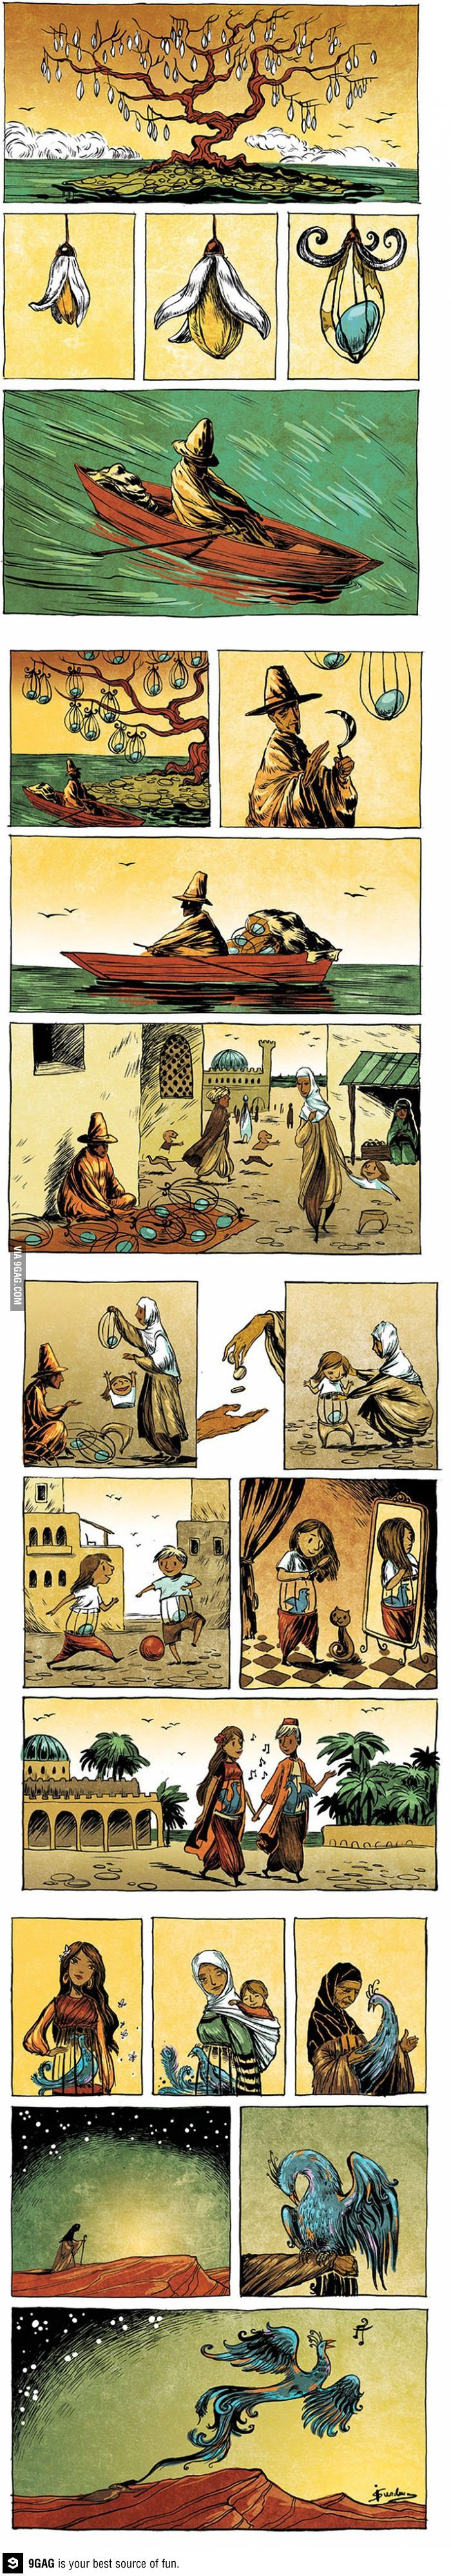 A simple life. The egg & bird represent one's soul. The story is about one's soul maturing into a full-grown bird which resembles a Phoenix. The Phoenix symbolizes rebirth. So when your body perishes, your soul leaves the body and will be reborned. It's a little philosophical and abstract..